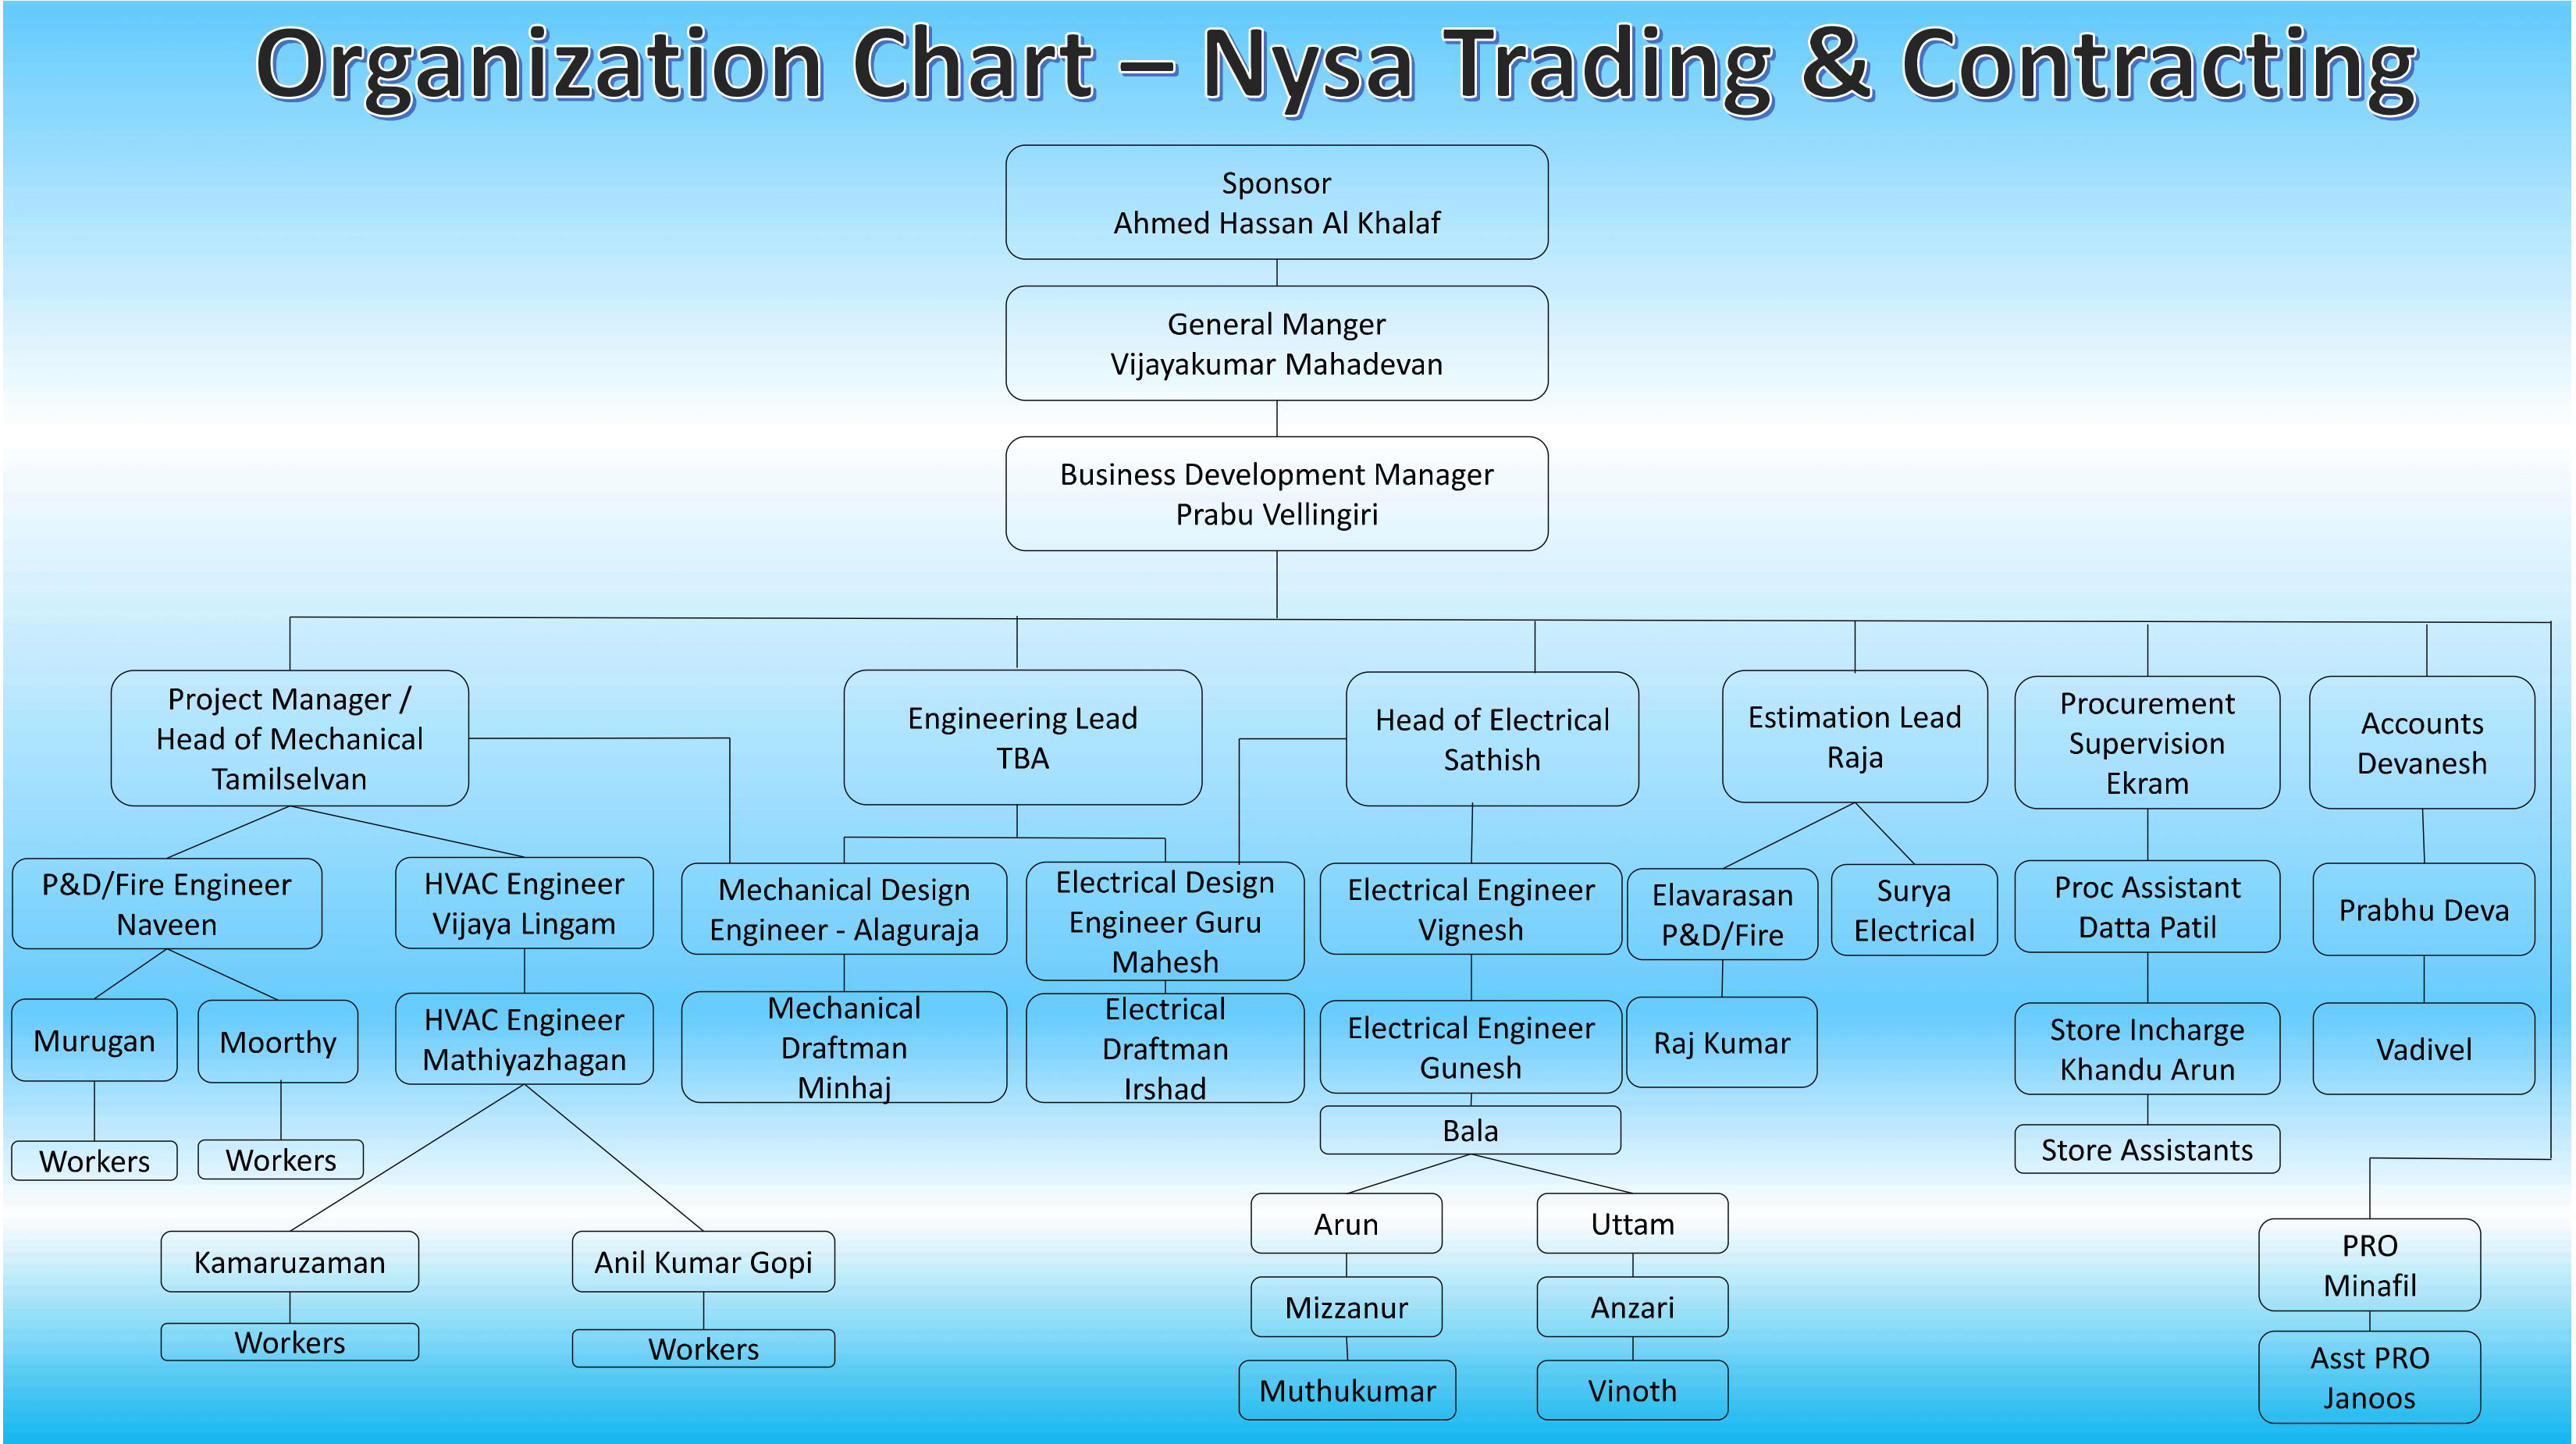 Organization Chart – nySa Trading & Contracting Co